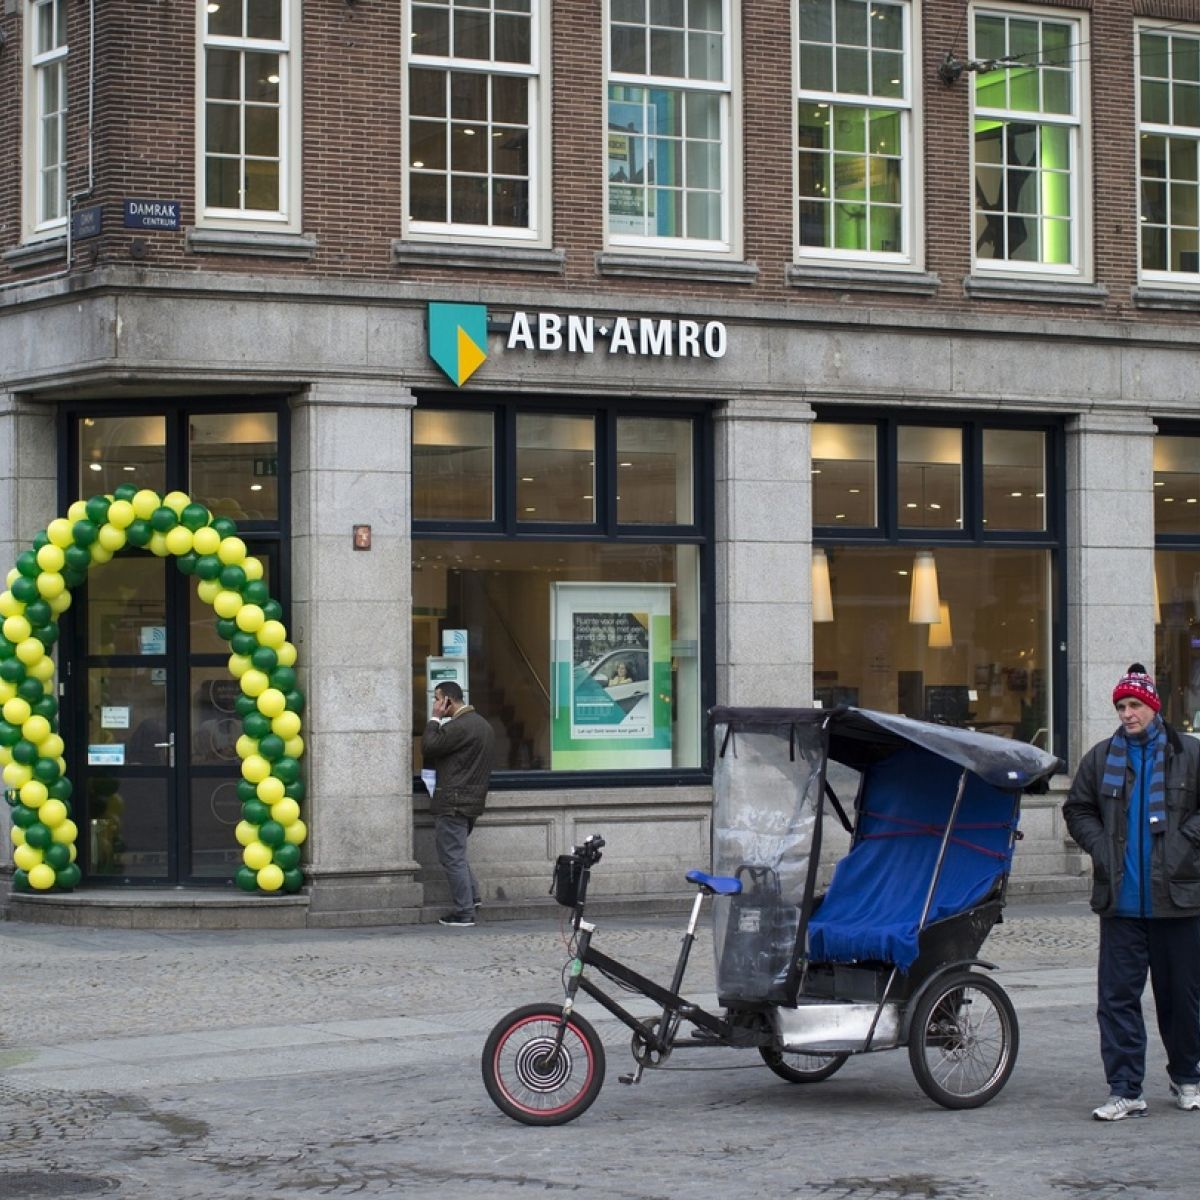 Working at ABN AMRO ABN AMRO Bank